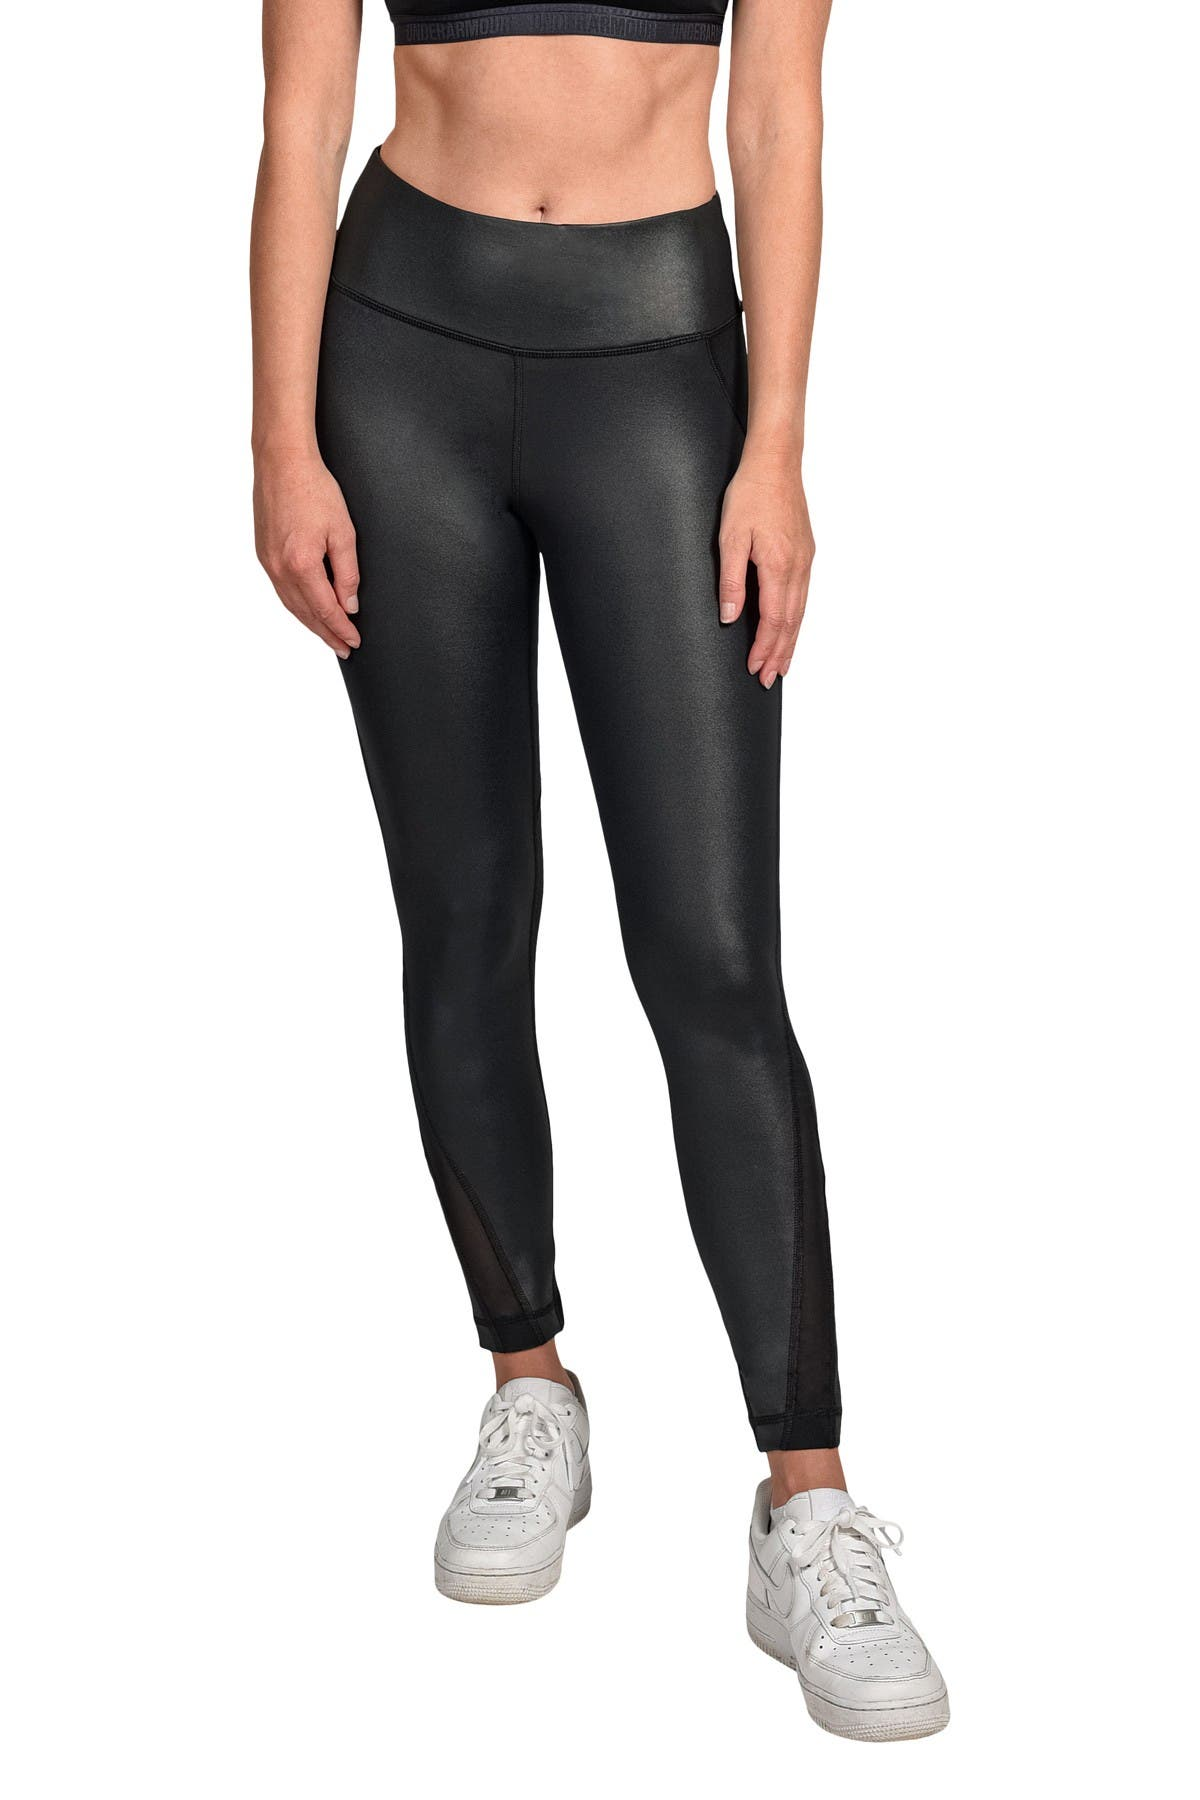 Image of 90 Degree By Reflex Cire Mesh Insert Leggings